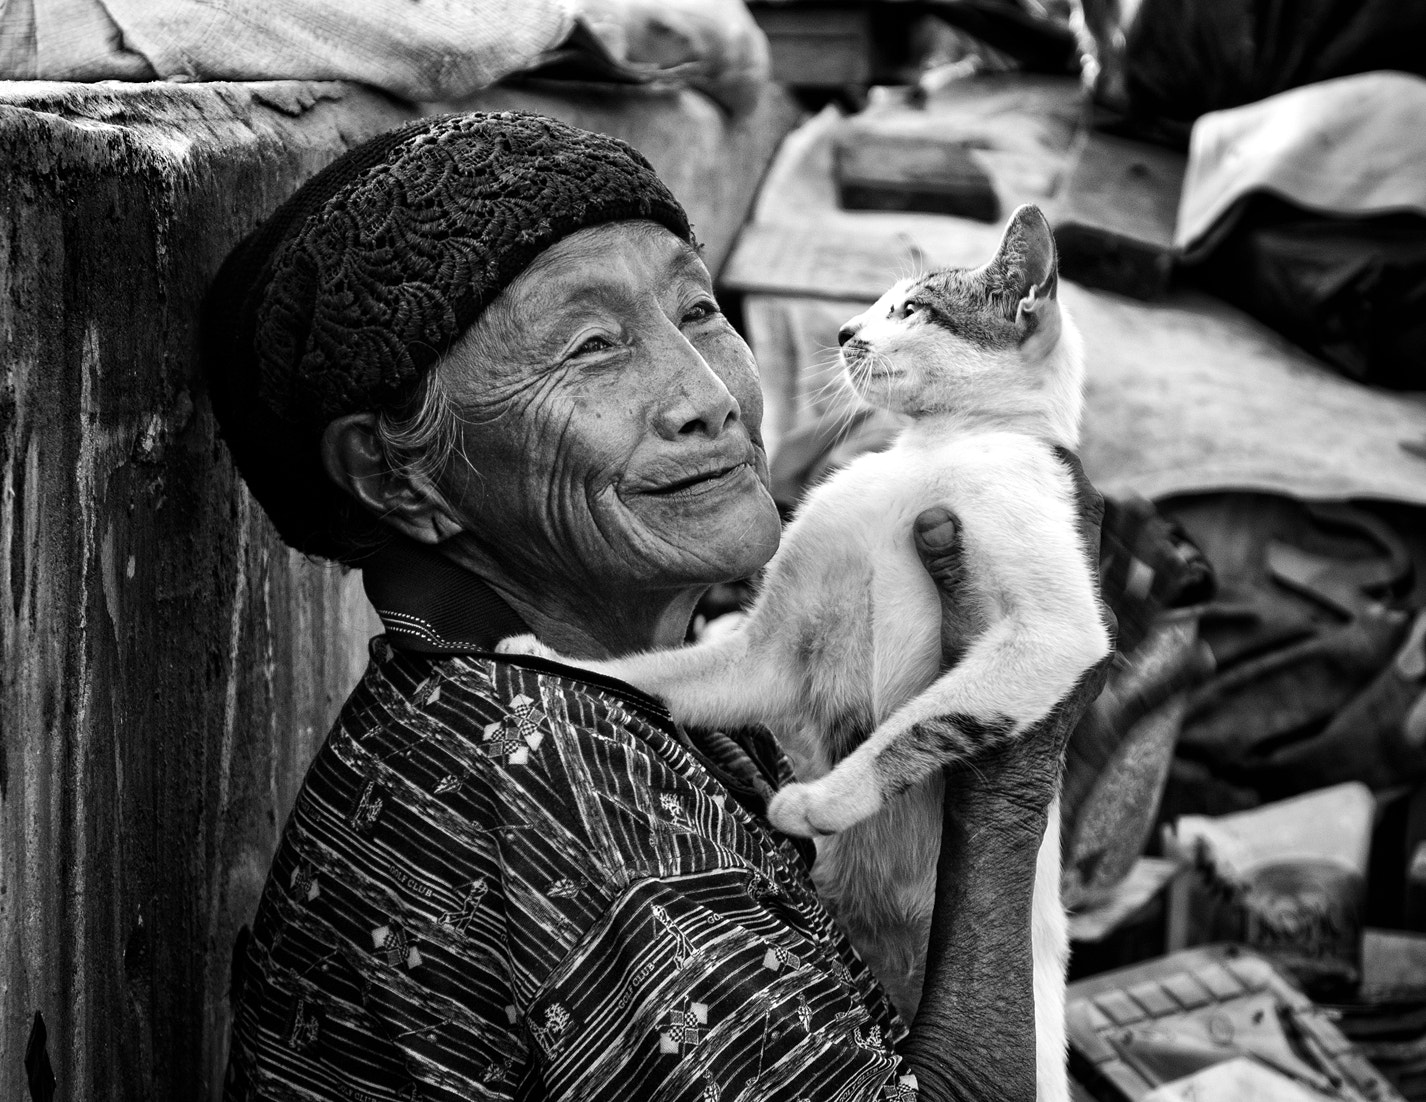 Photograph Companionship by Jon Gwyther on 500px